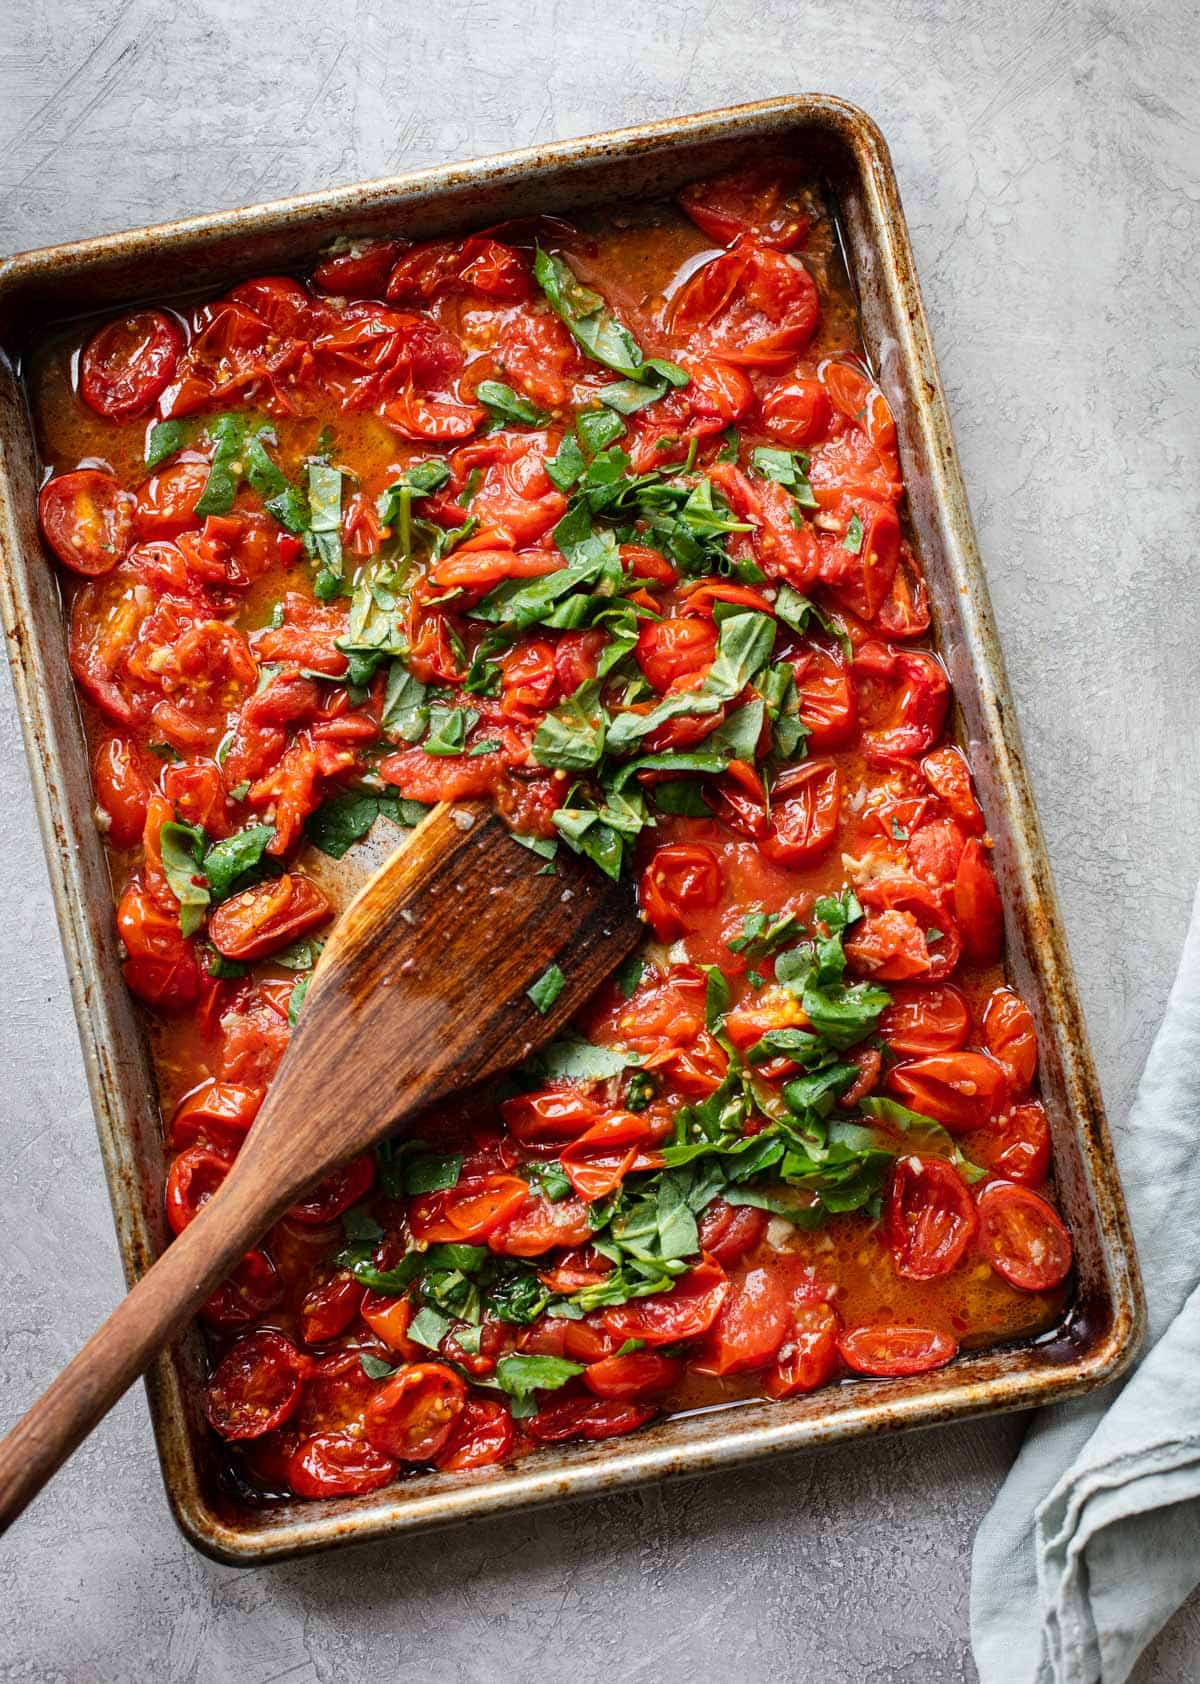 Bucatini with Spicy Sheet Pan Tomato Sauce